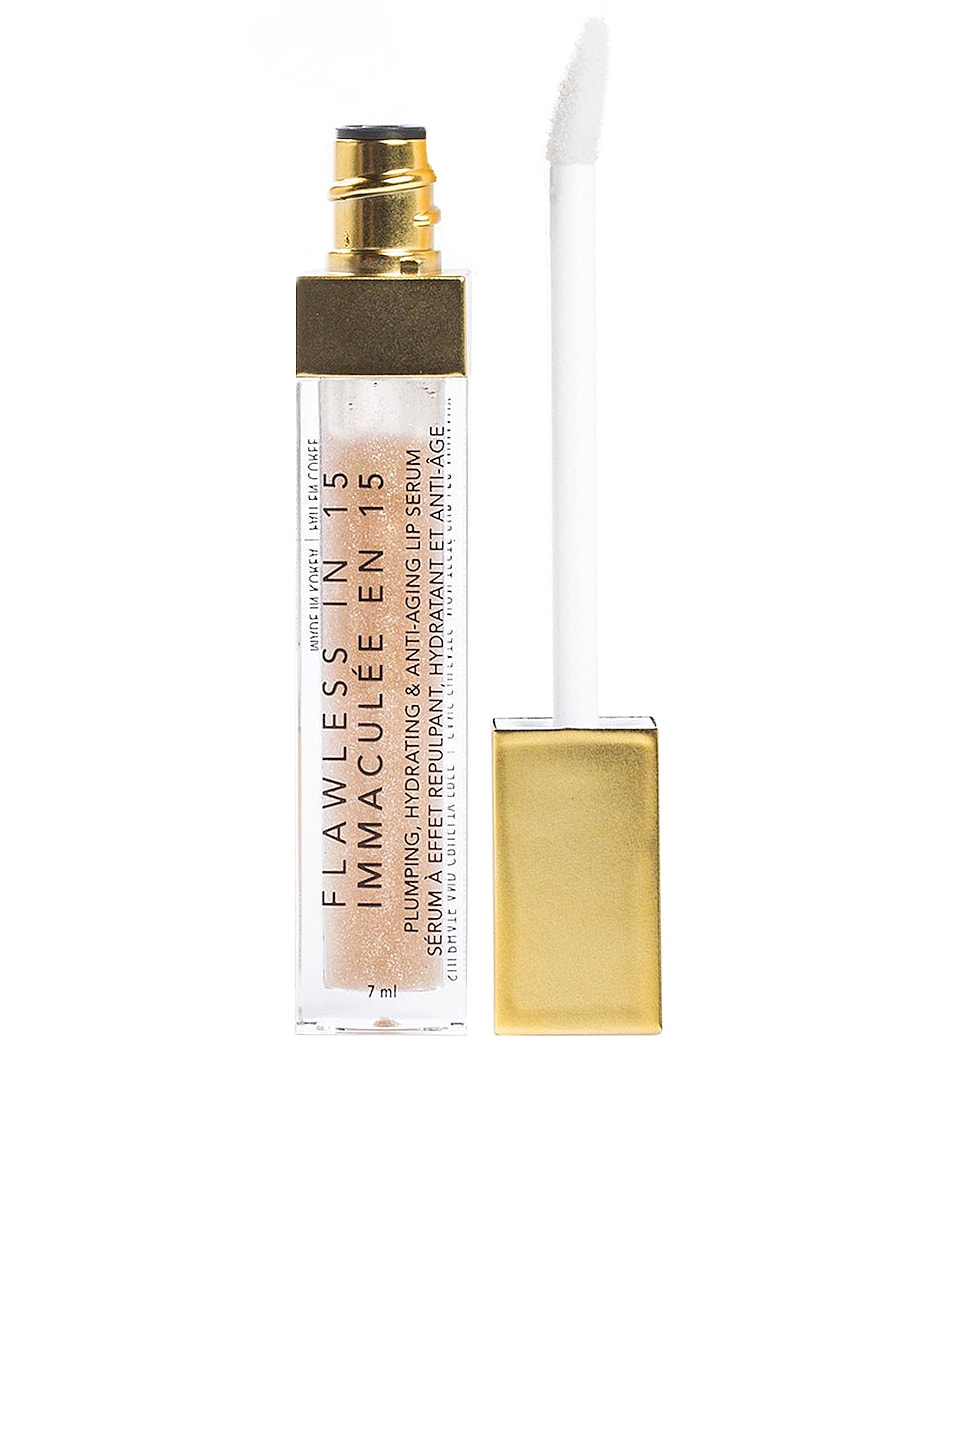 FLAWLESS BY FRIDAY 5 Second Lip Serum in Beauty: Na